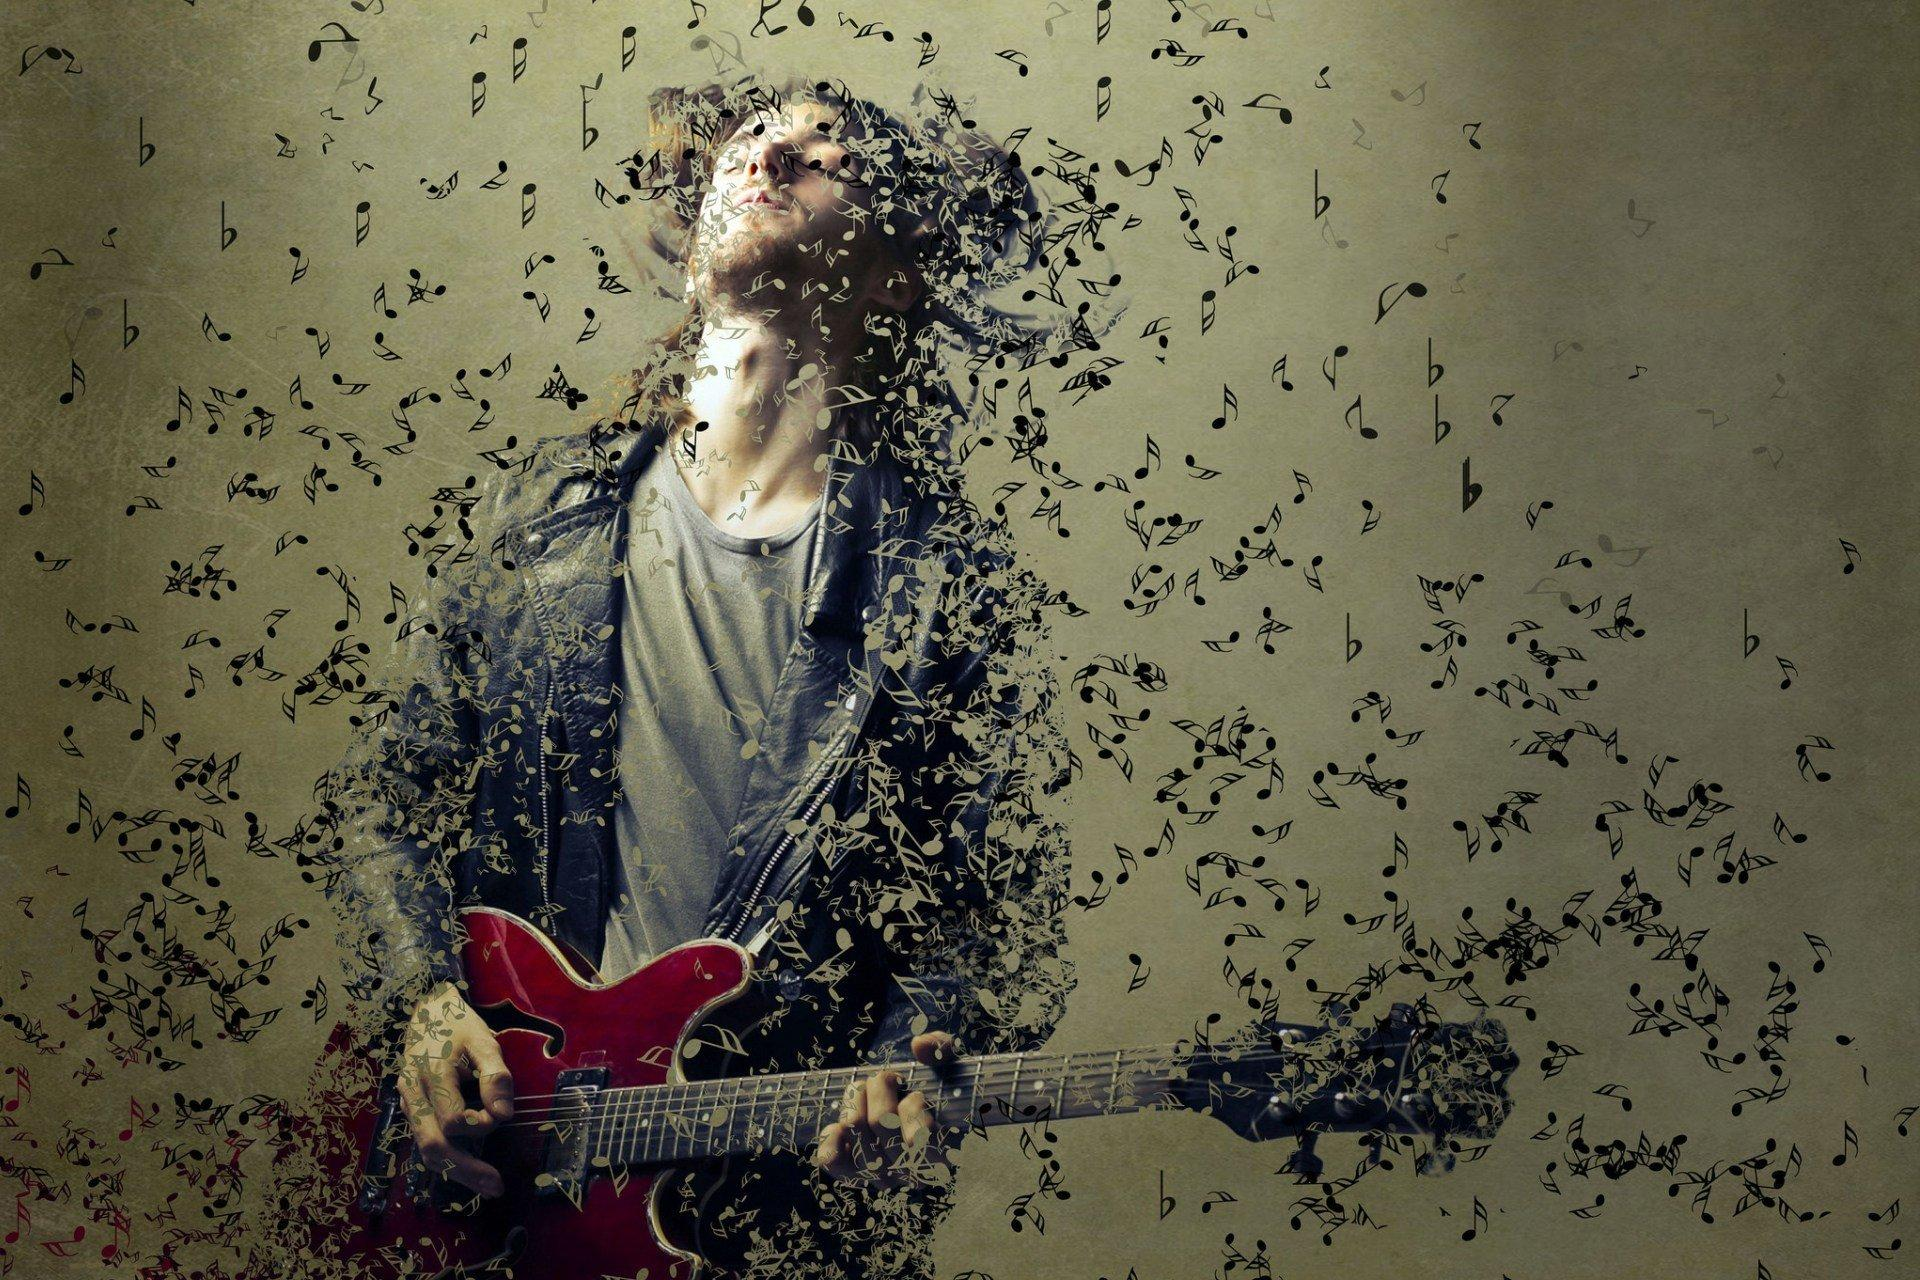 Music Music guitar soul my liffe notes guy wallpaper | 1920x1280 ...